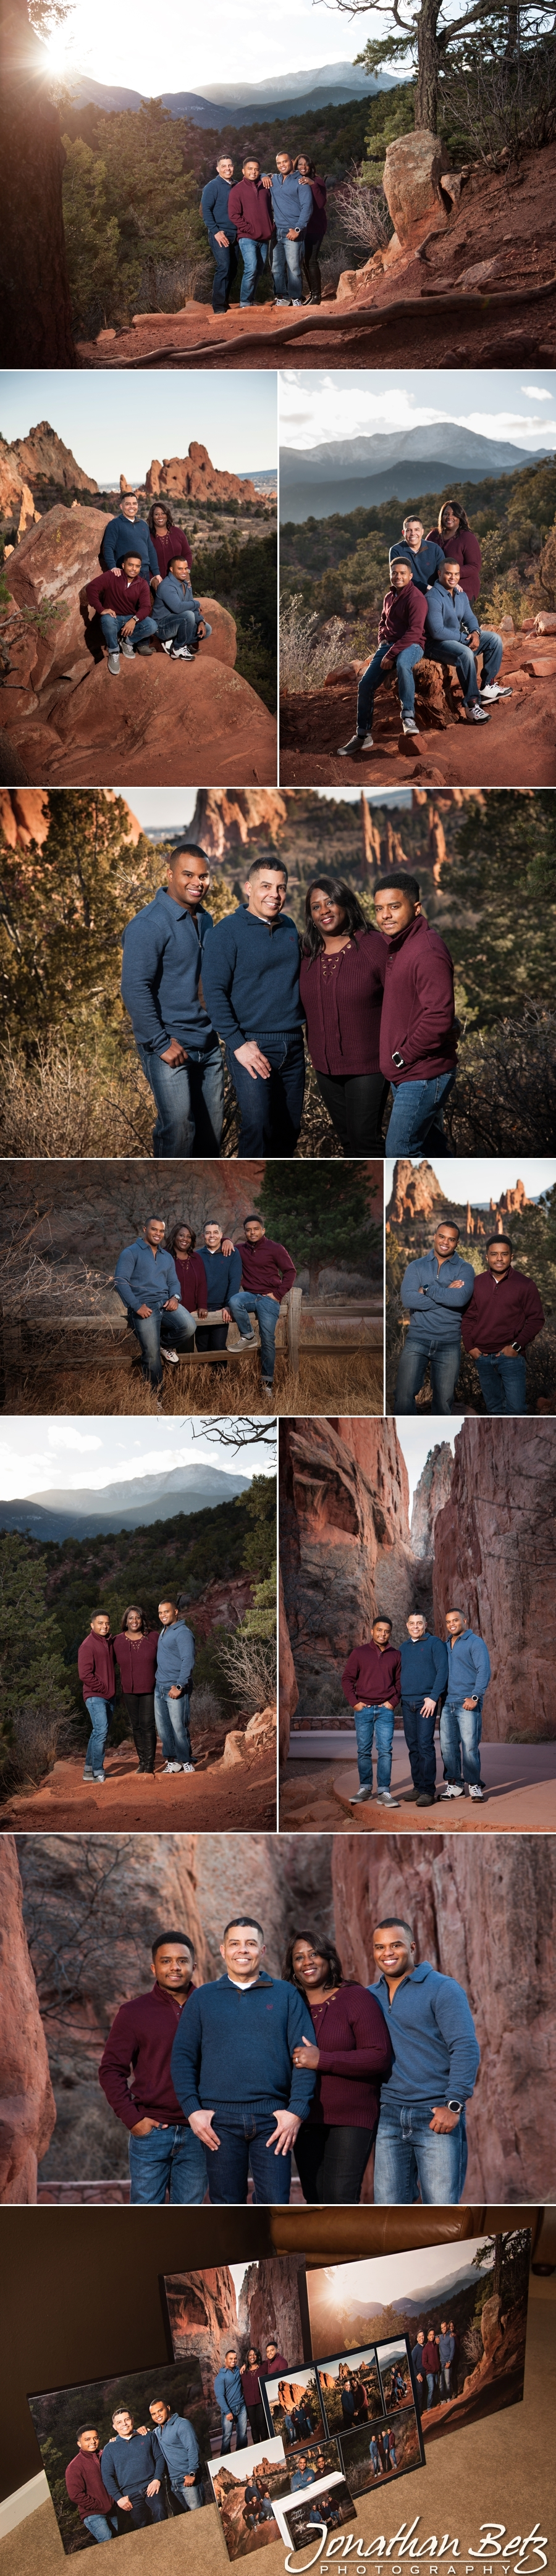 Adventure Family Portraits Jonathan Betz Photography Colorado Springs Garden of the Gods 1